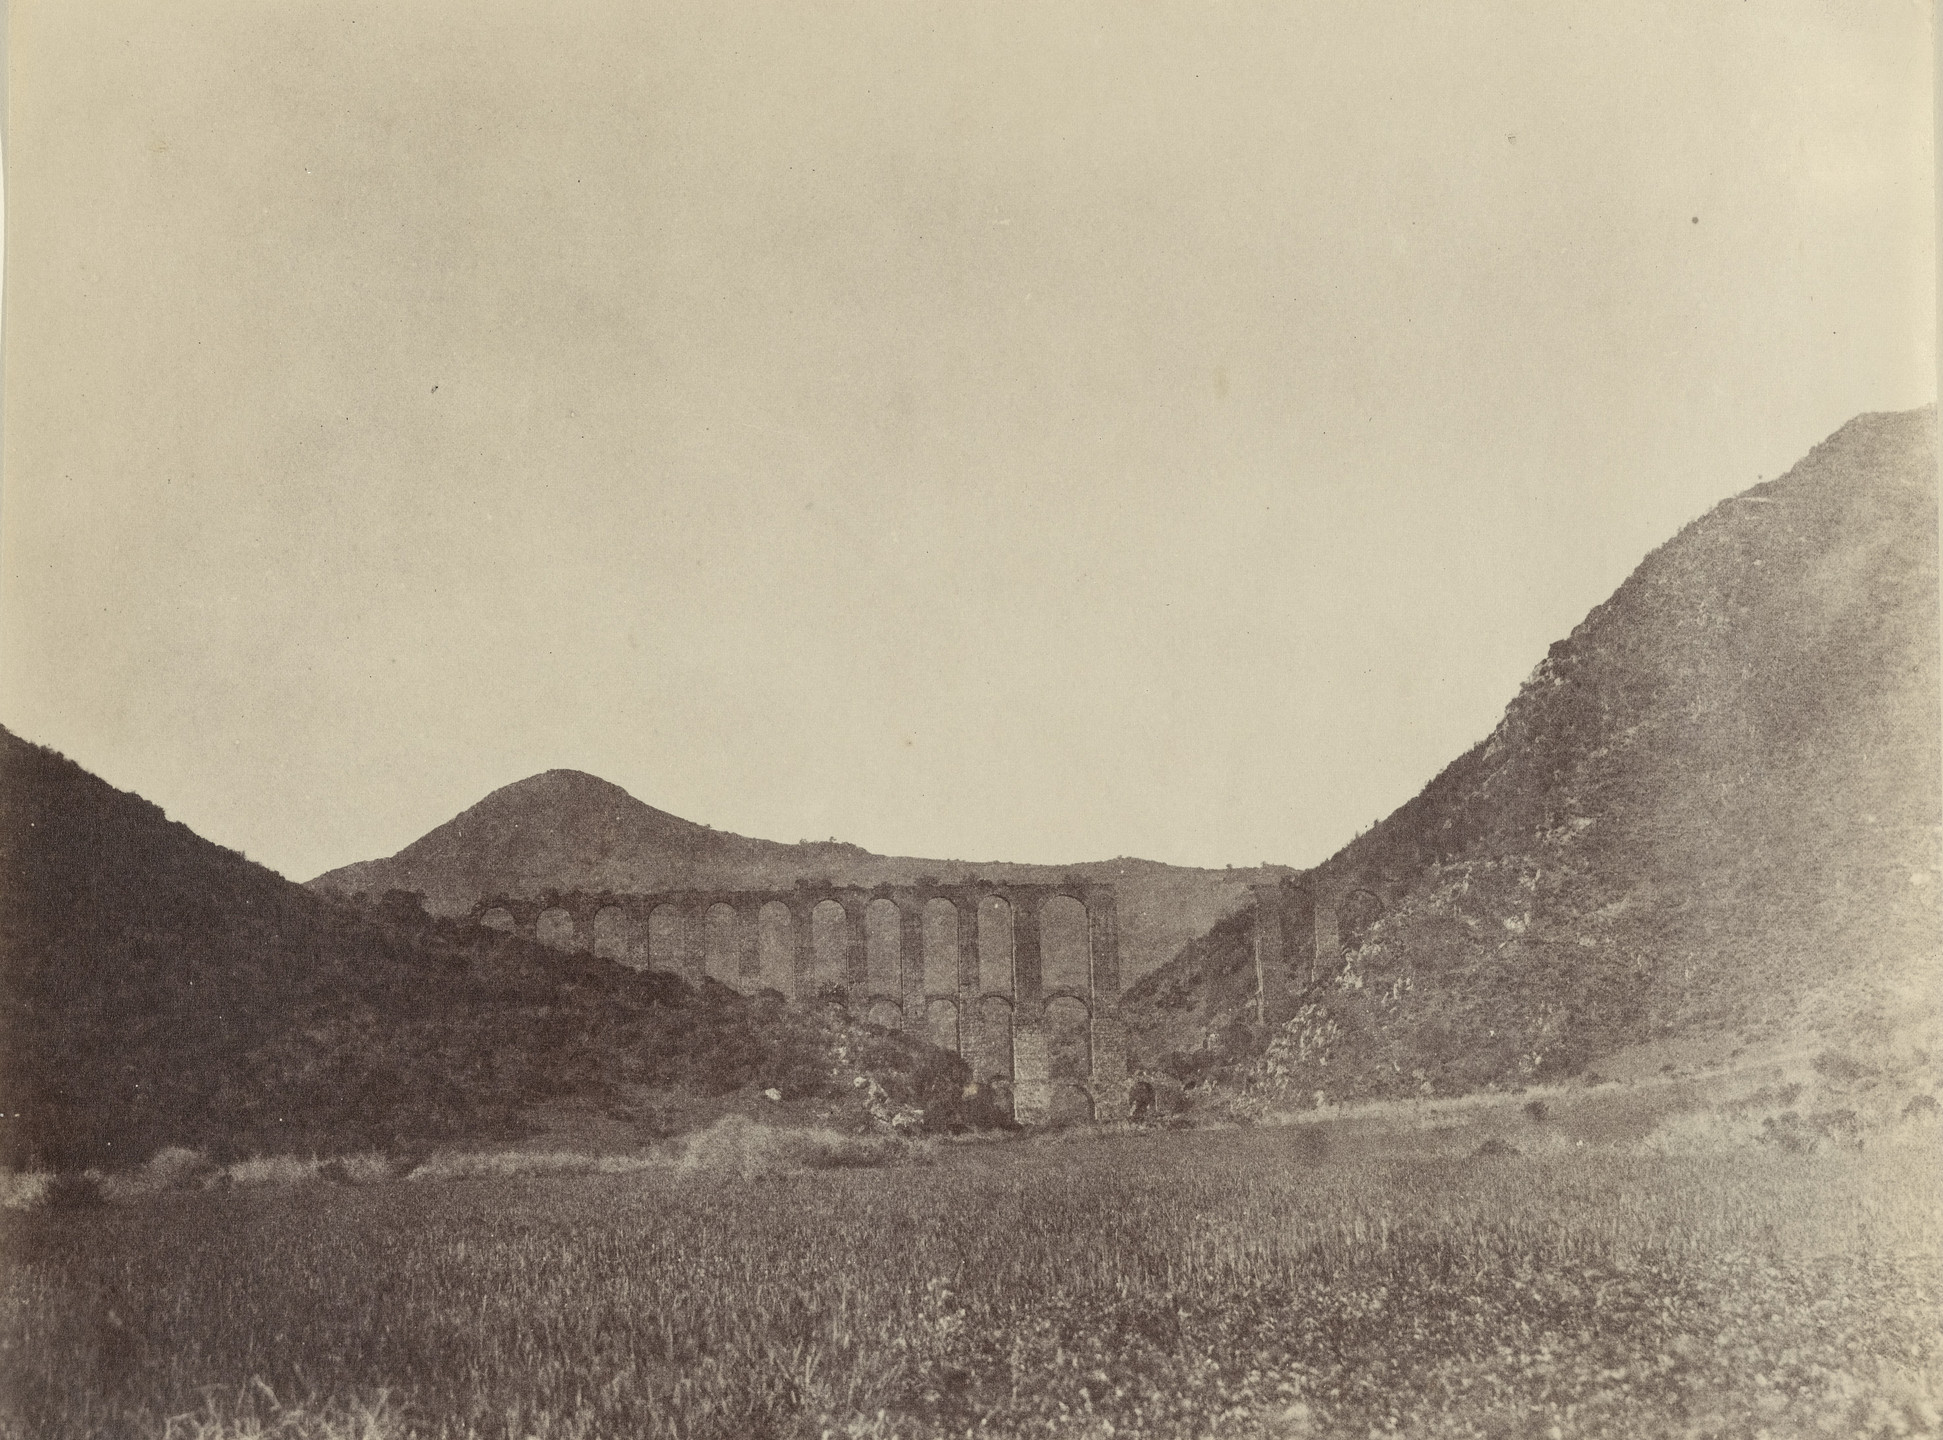 John B. Greene. Aqueduct of Cherchell. 1855-1856